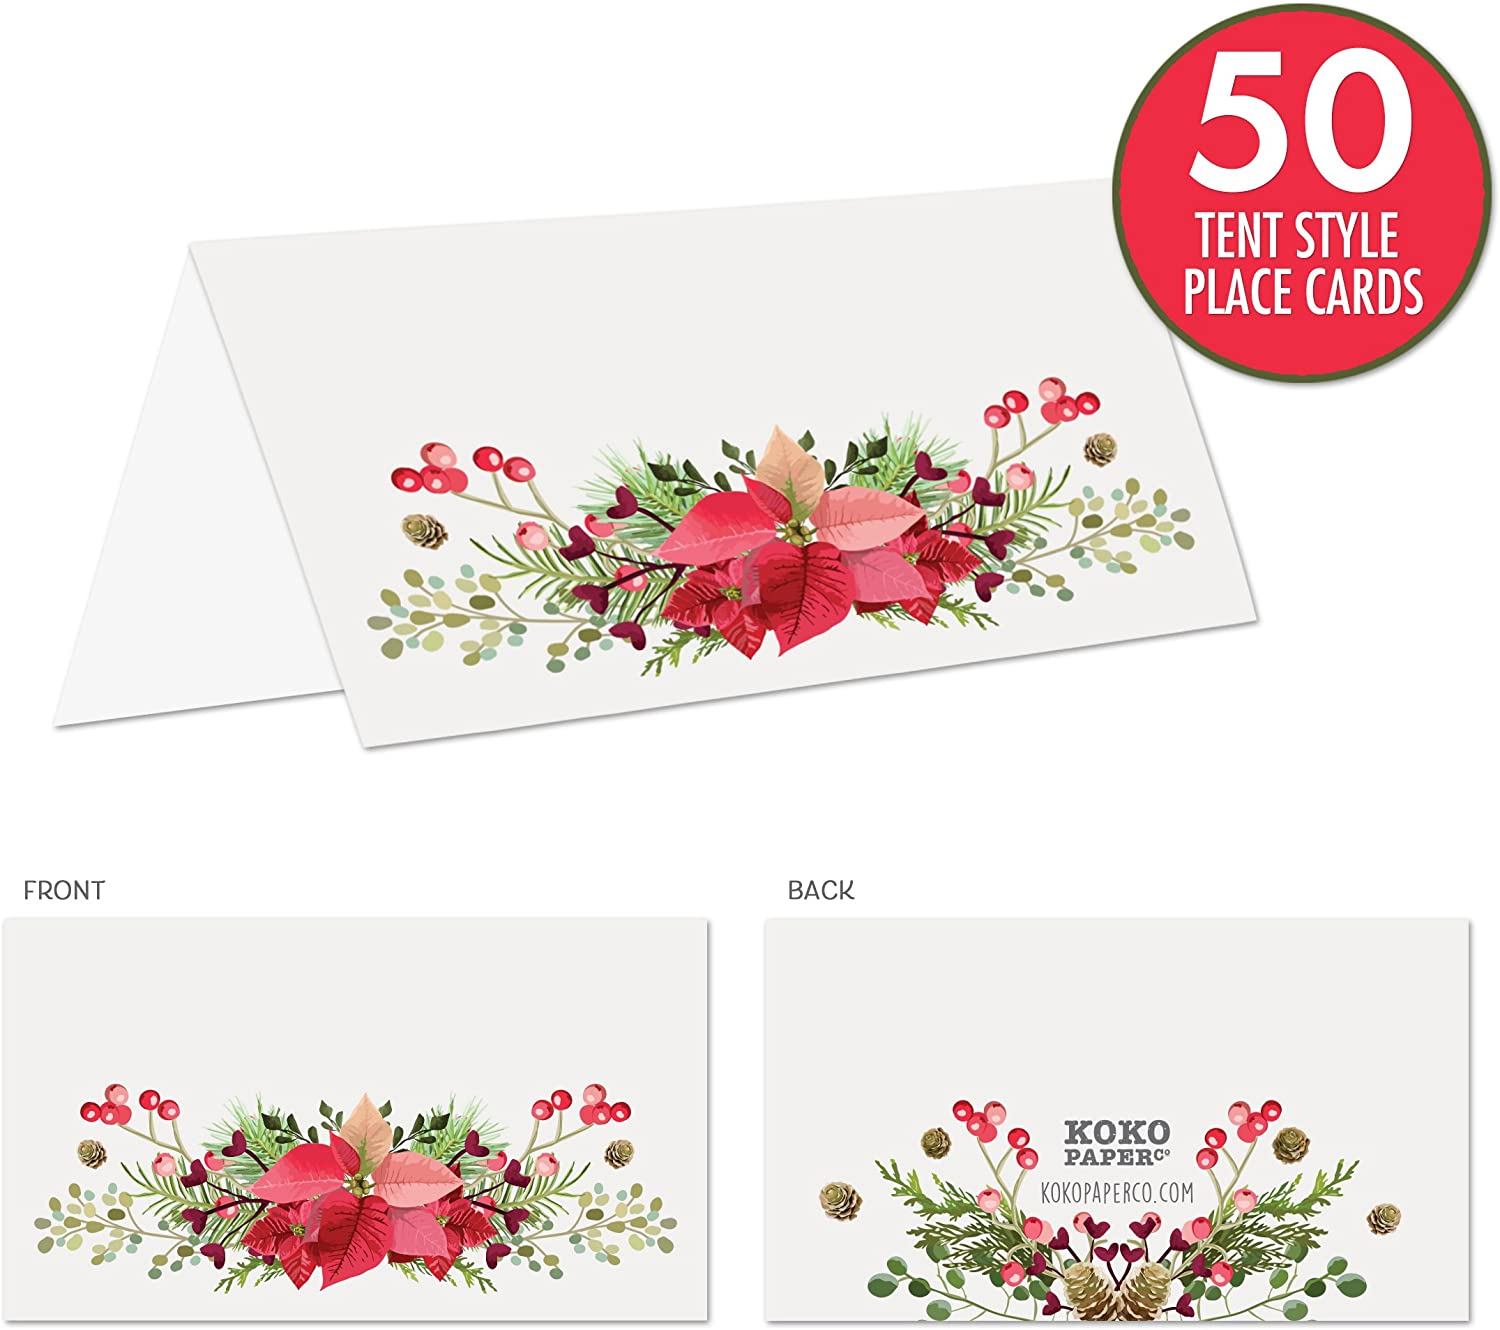 No Holder Necessary. Brunch Koko Paper Co Rustic Christmas Place Cards with Poinsettia Pine Cones and Winter Florals Pack of 50 Tent Style Cards for Holiday Dinner Holly or Any Occasion Party